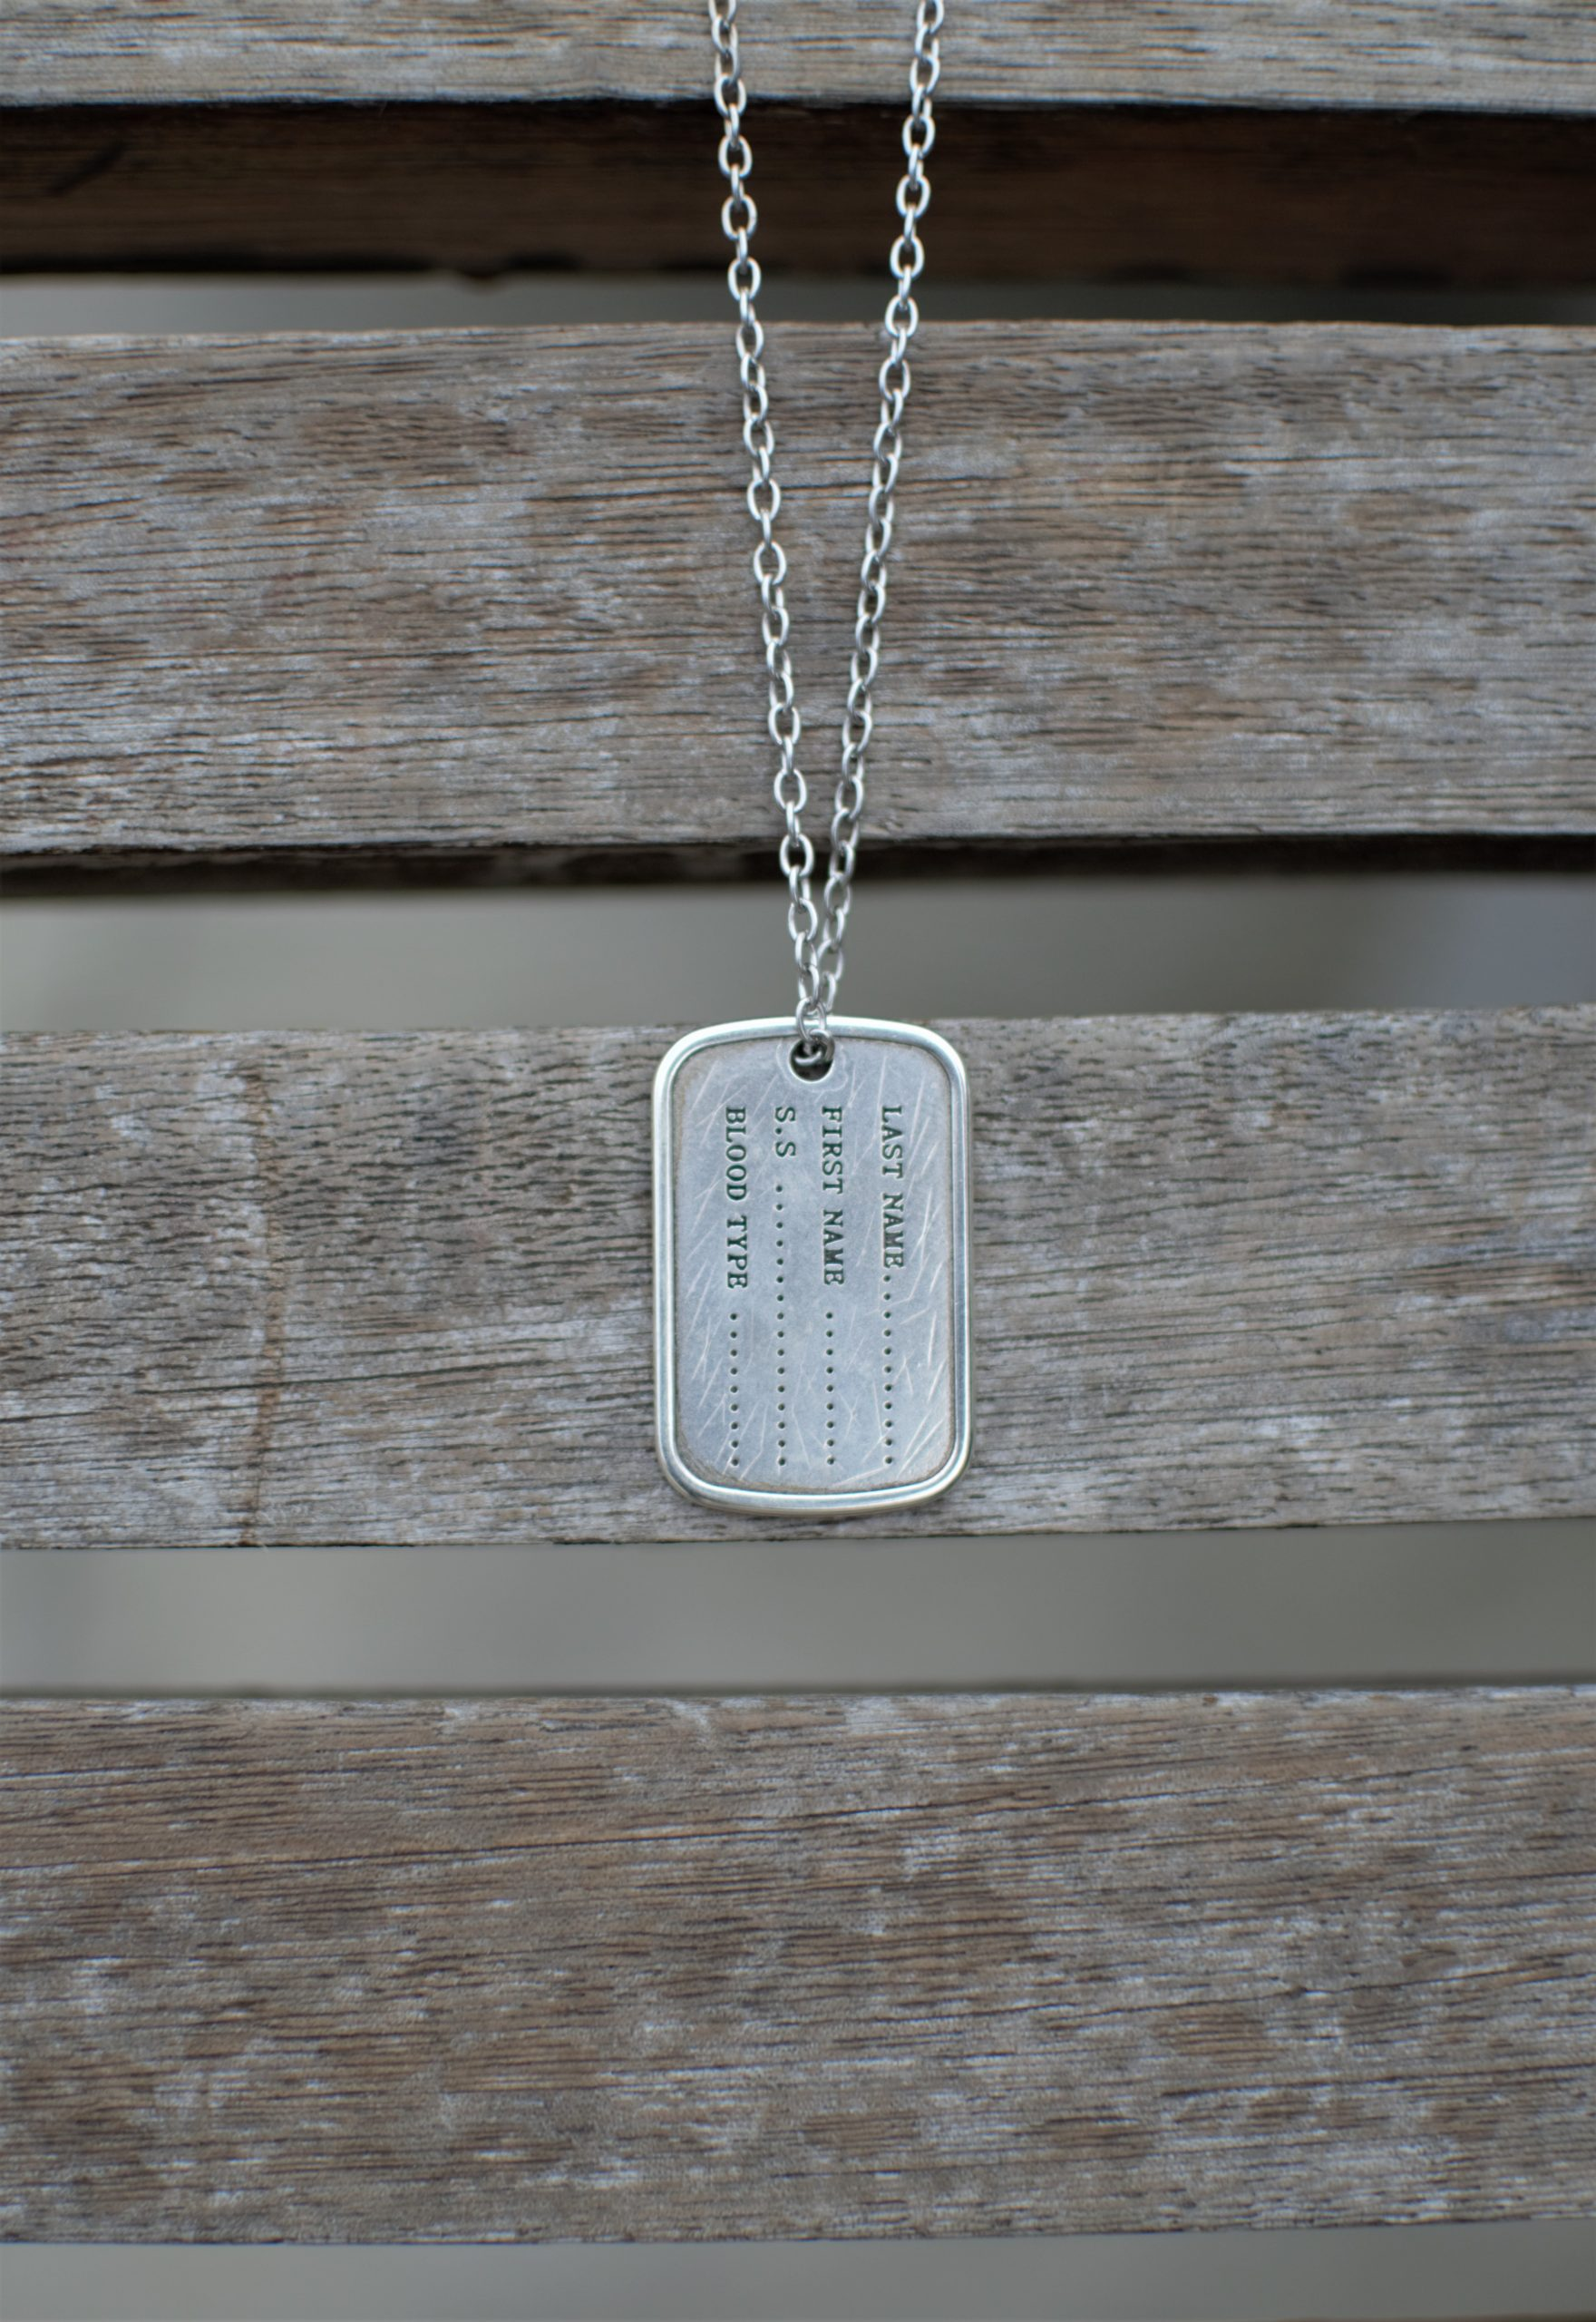 The Chain Army Tag Men's Necklace